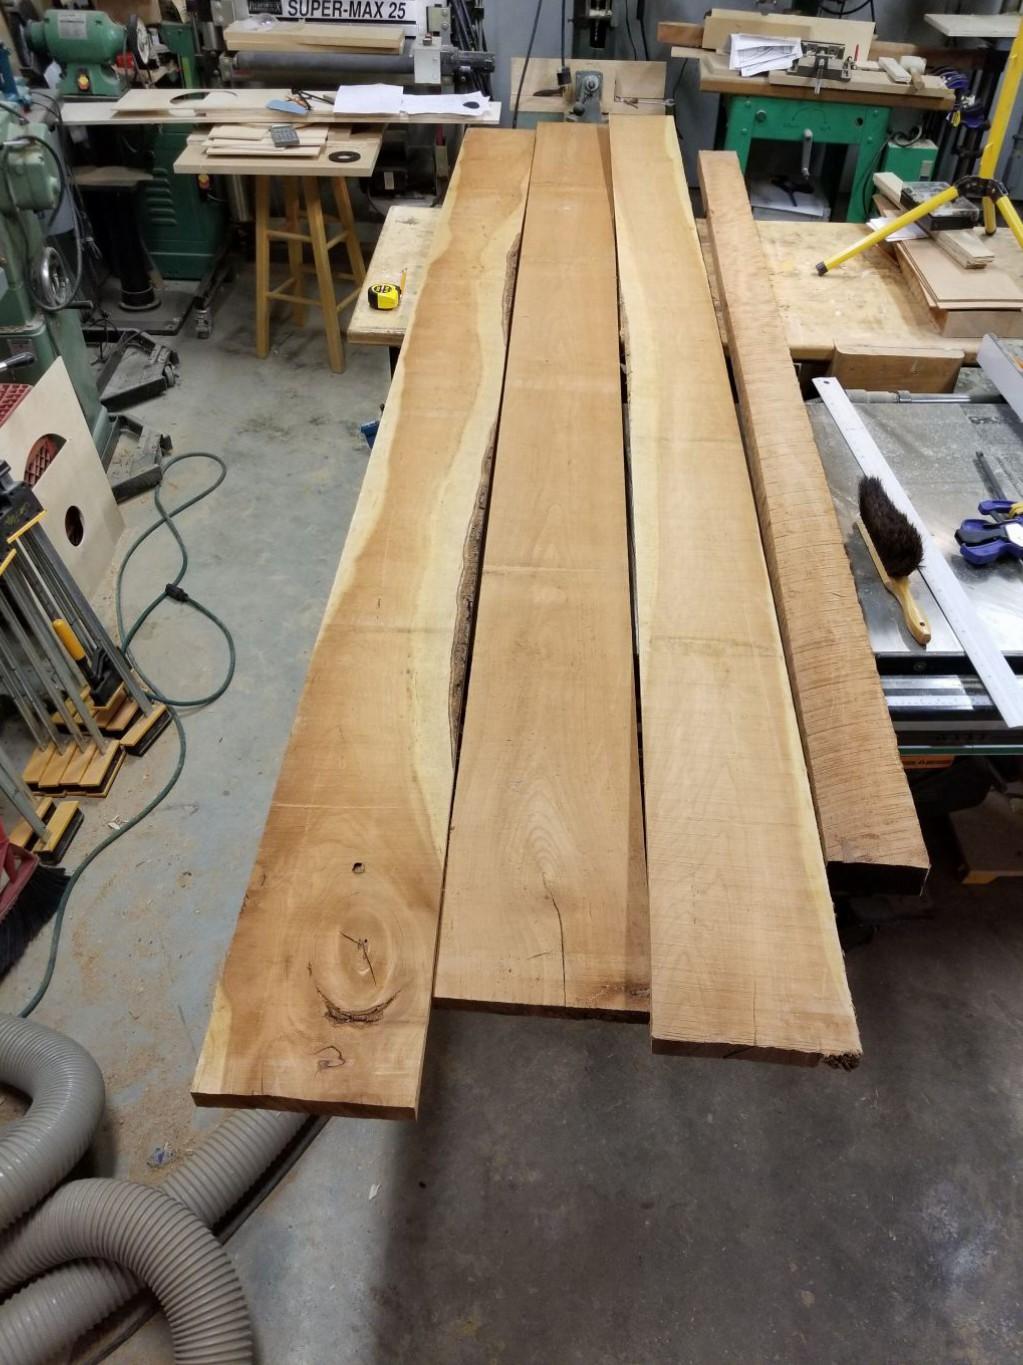 The raw Lumber